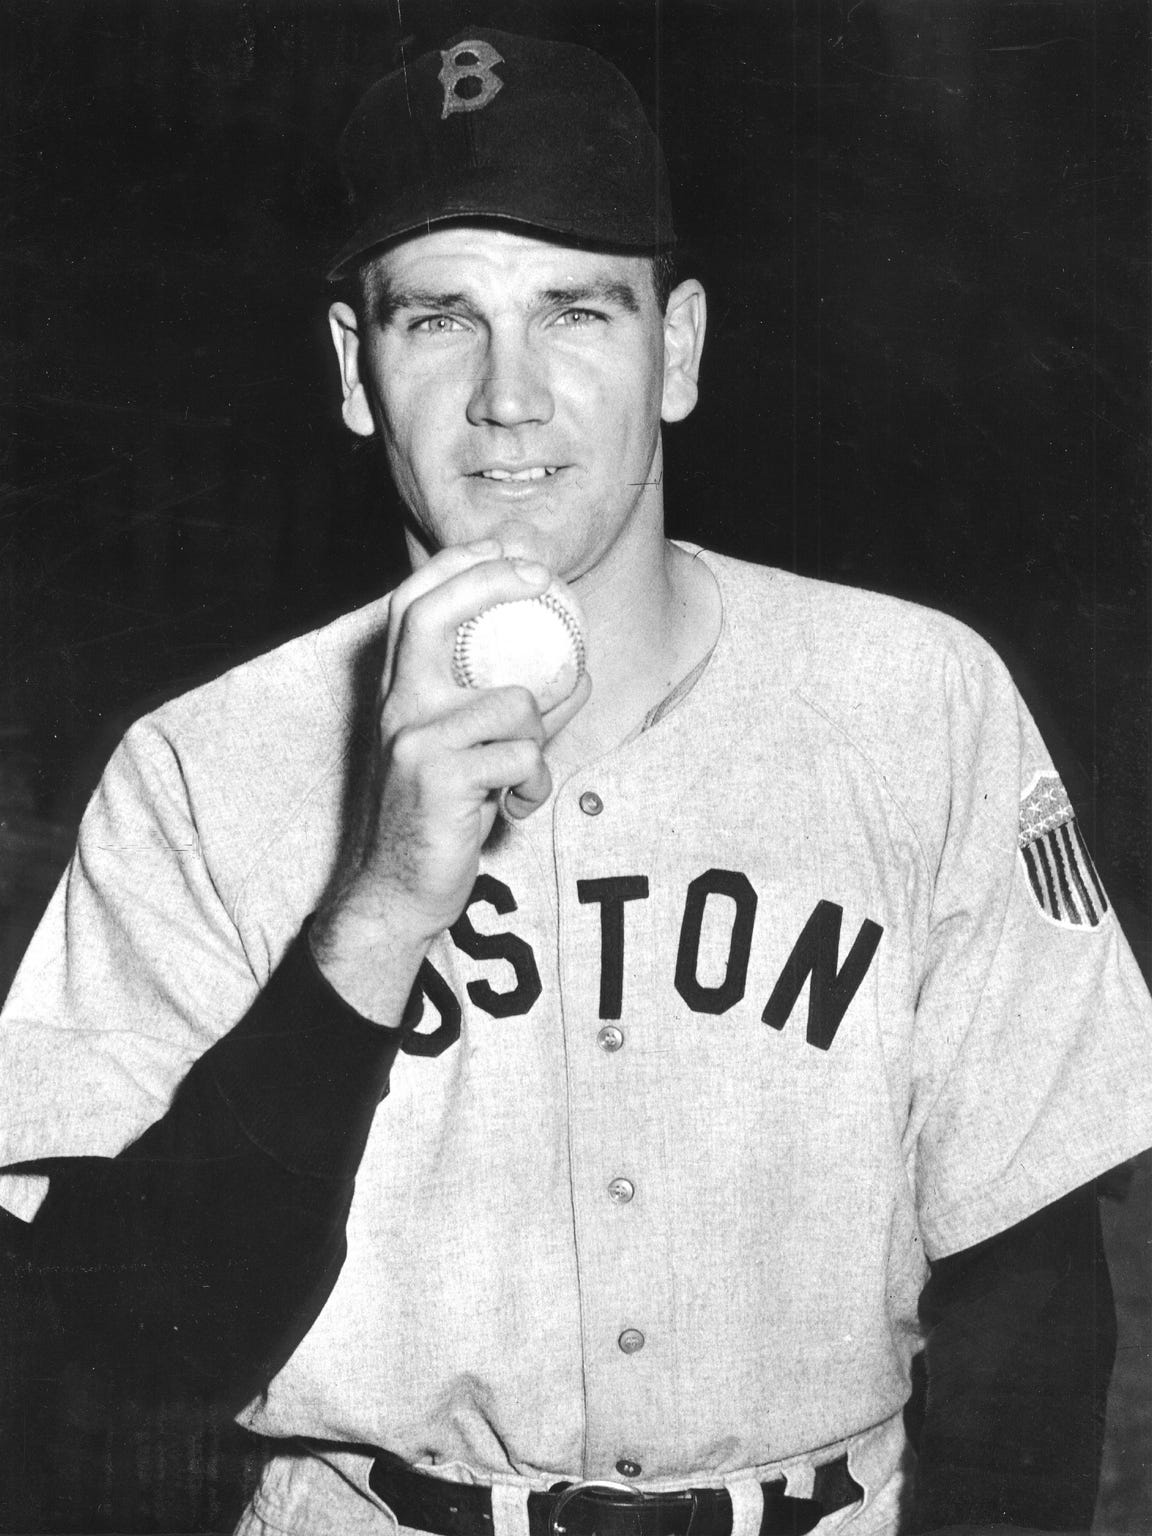 Boo Ferriss was a standout pitcher for the Boston Red